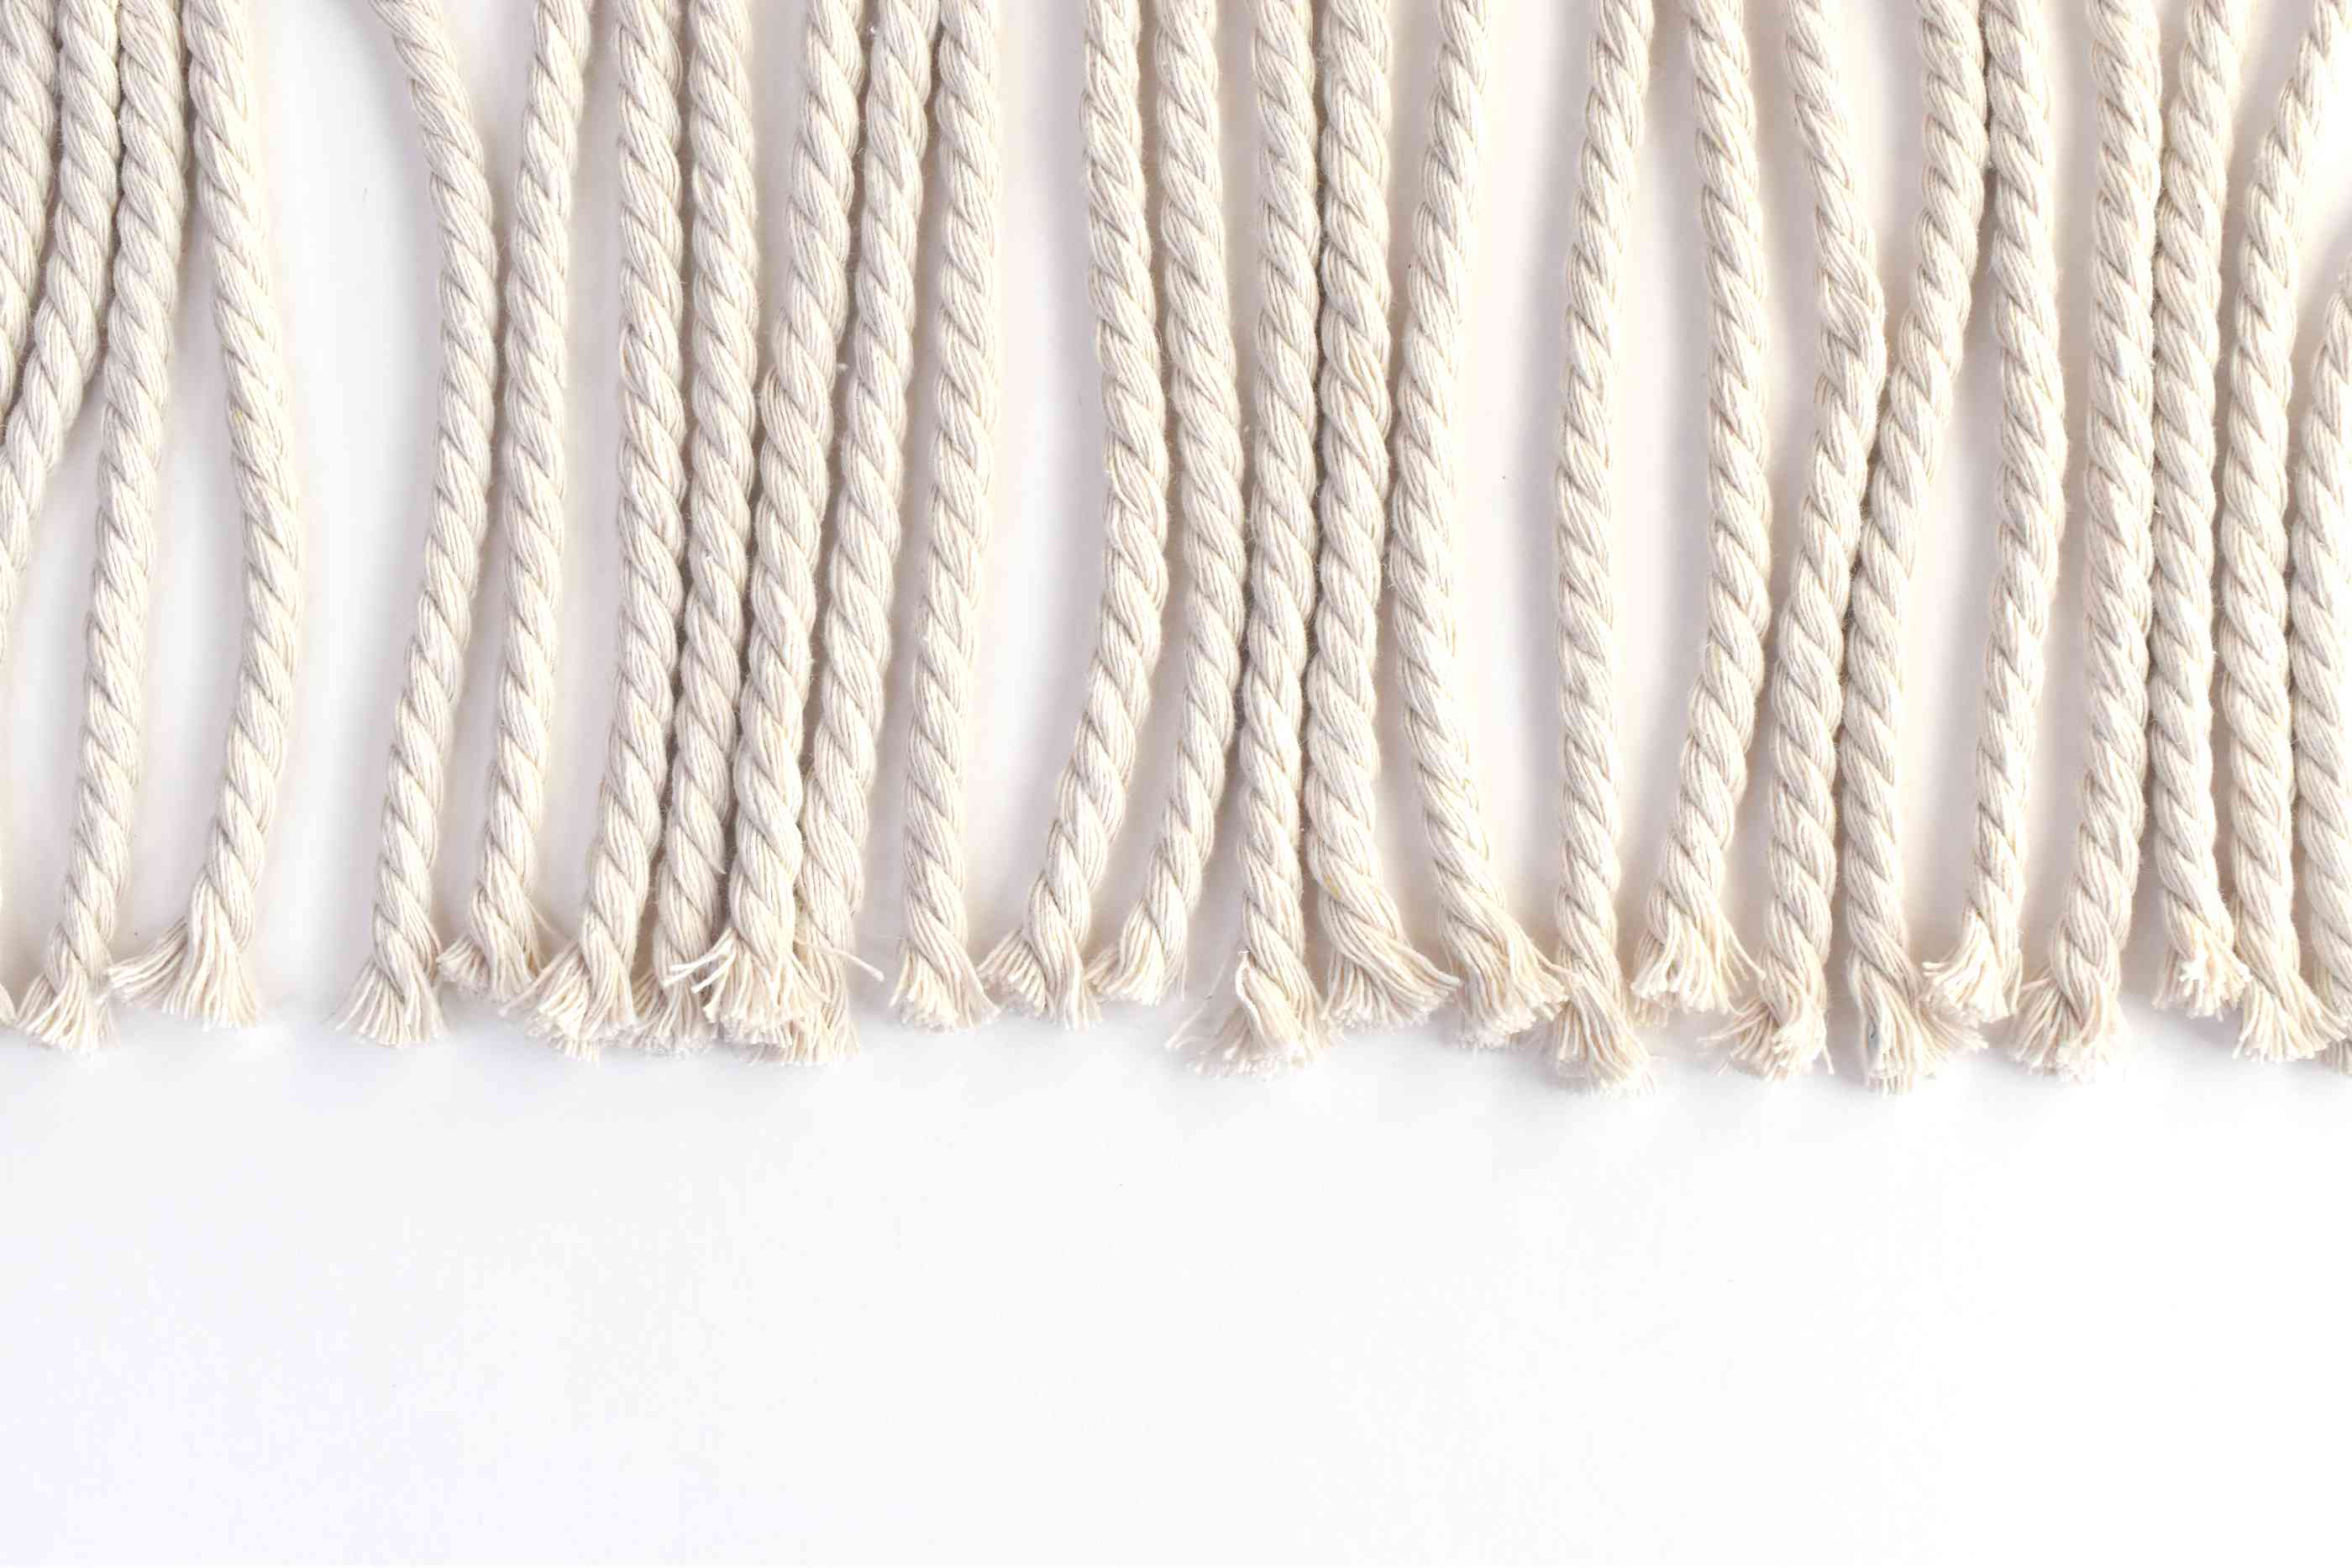 Trim the ends of the ropes to make them even